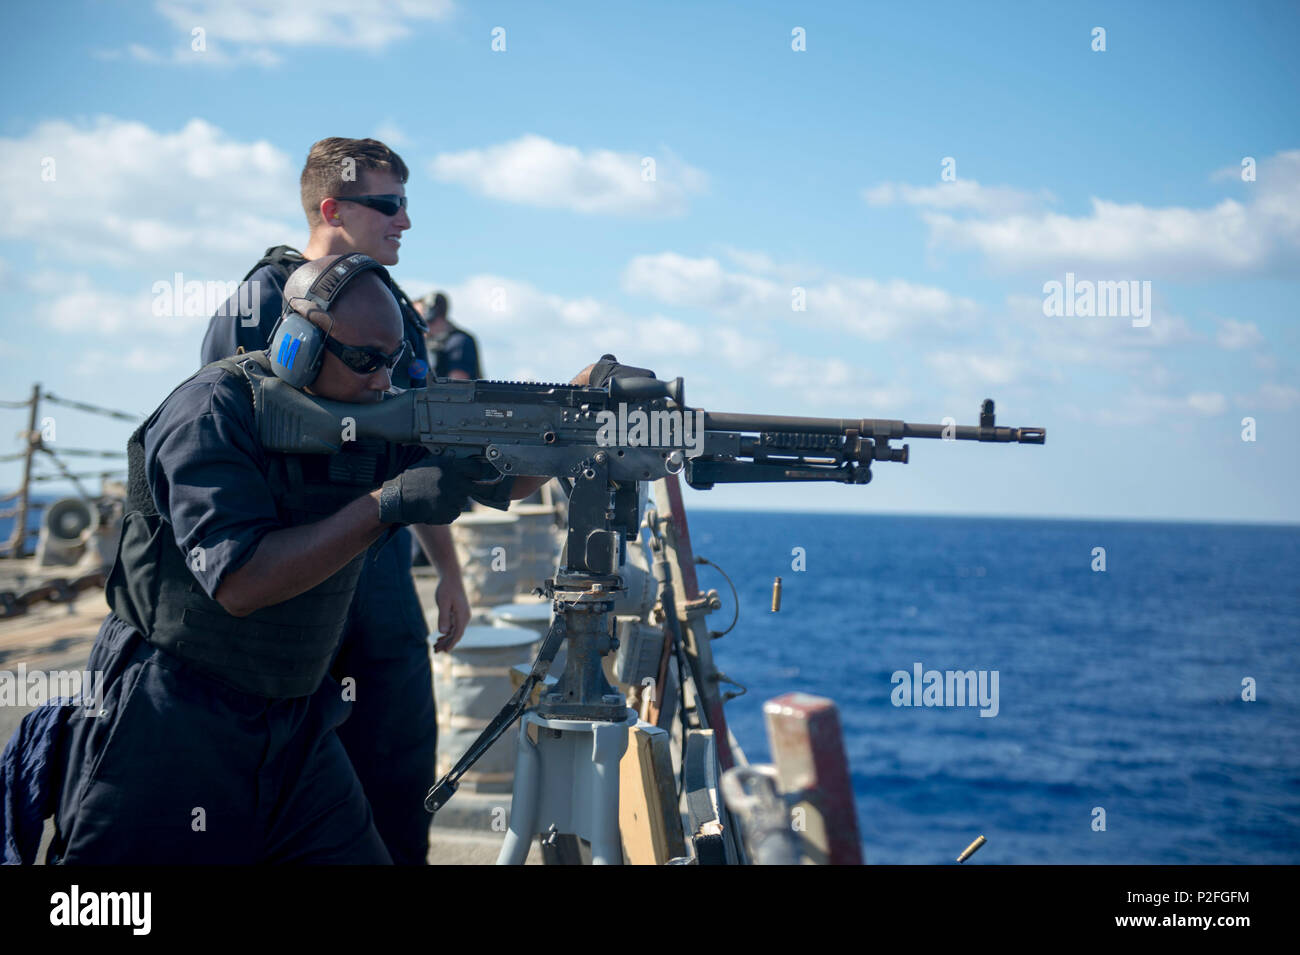 160907-N-DQ503-246  MEDITERRANEAN SEA (Sept. 7, 2016) Gunner's Mate 2nd Class John Murphy observes as Gunner's Mate 2nd Class Allen Marshall fires an M240B machine gun aboard the guided-missile destroyer USS Roosevelt (DDG 80) during a live-fire exercise. Roosevelt, deployed as part of the Eisenhower Carrier Strike Group, is supporting maritime security operations and theater security cooperation efforts in the U.S. 5th Fleet area of operations. (U.S. Navy photo by Mass Communication Specialist 3rd Class Taylor A. Elberg/Released) - Stock Image